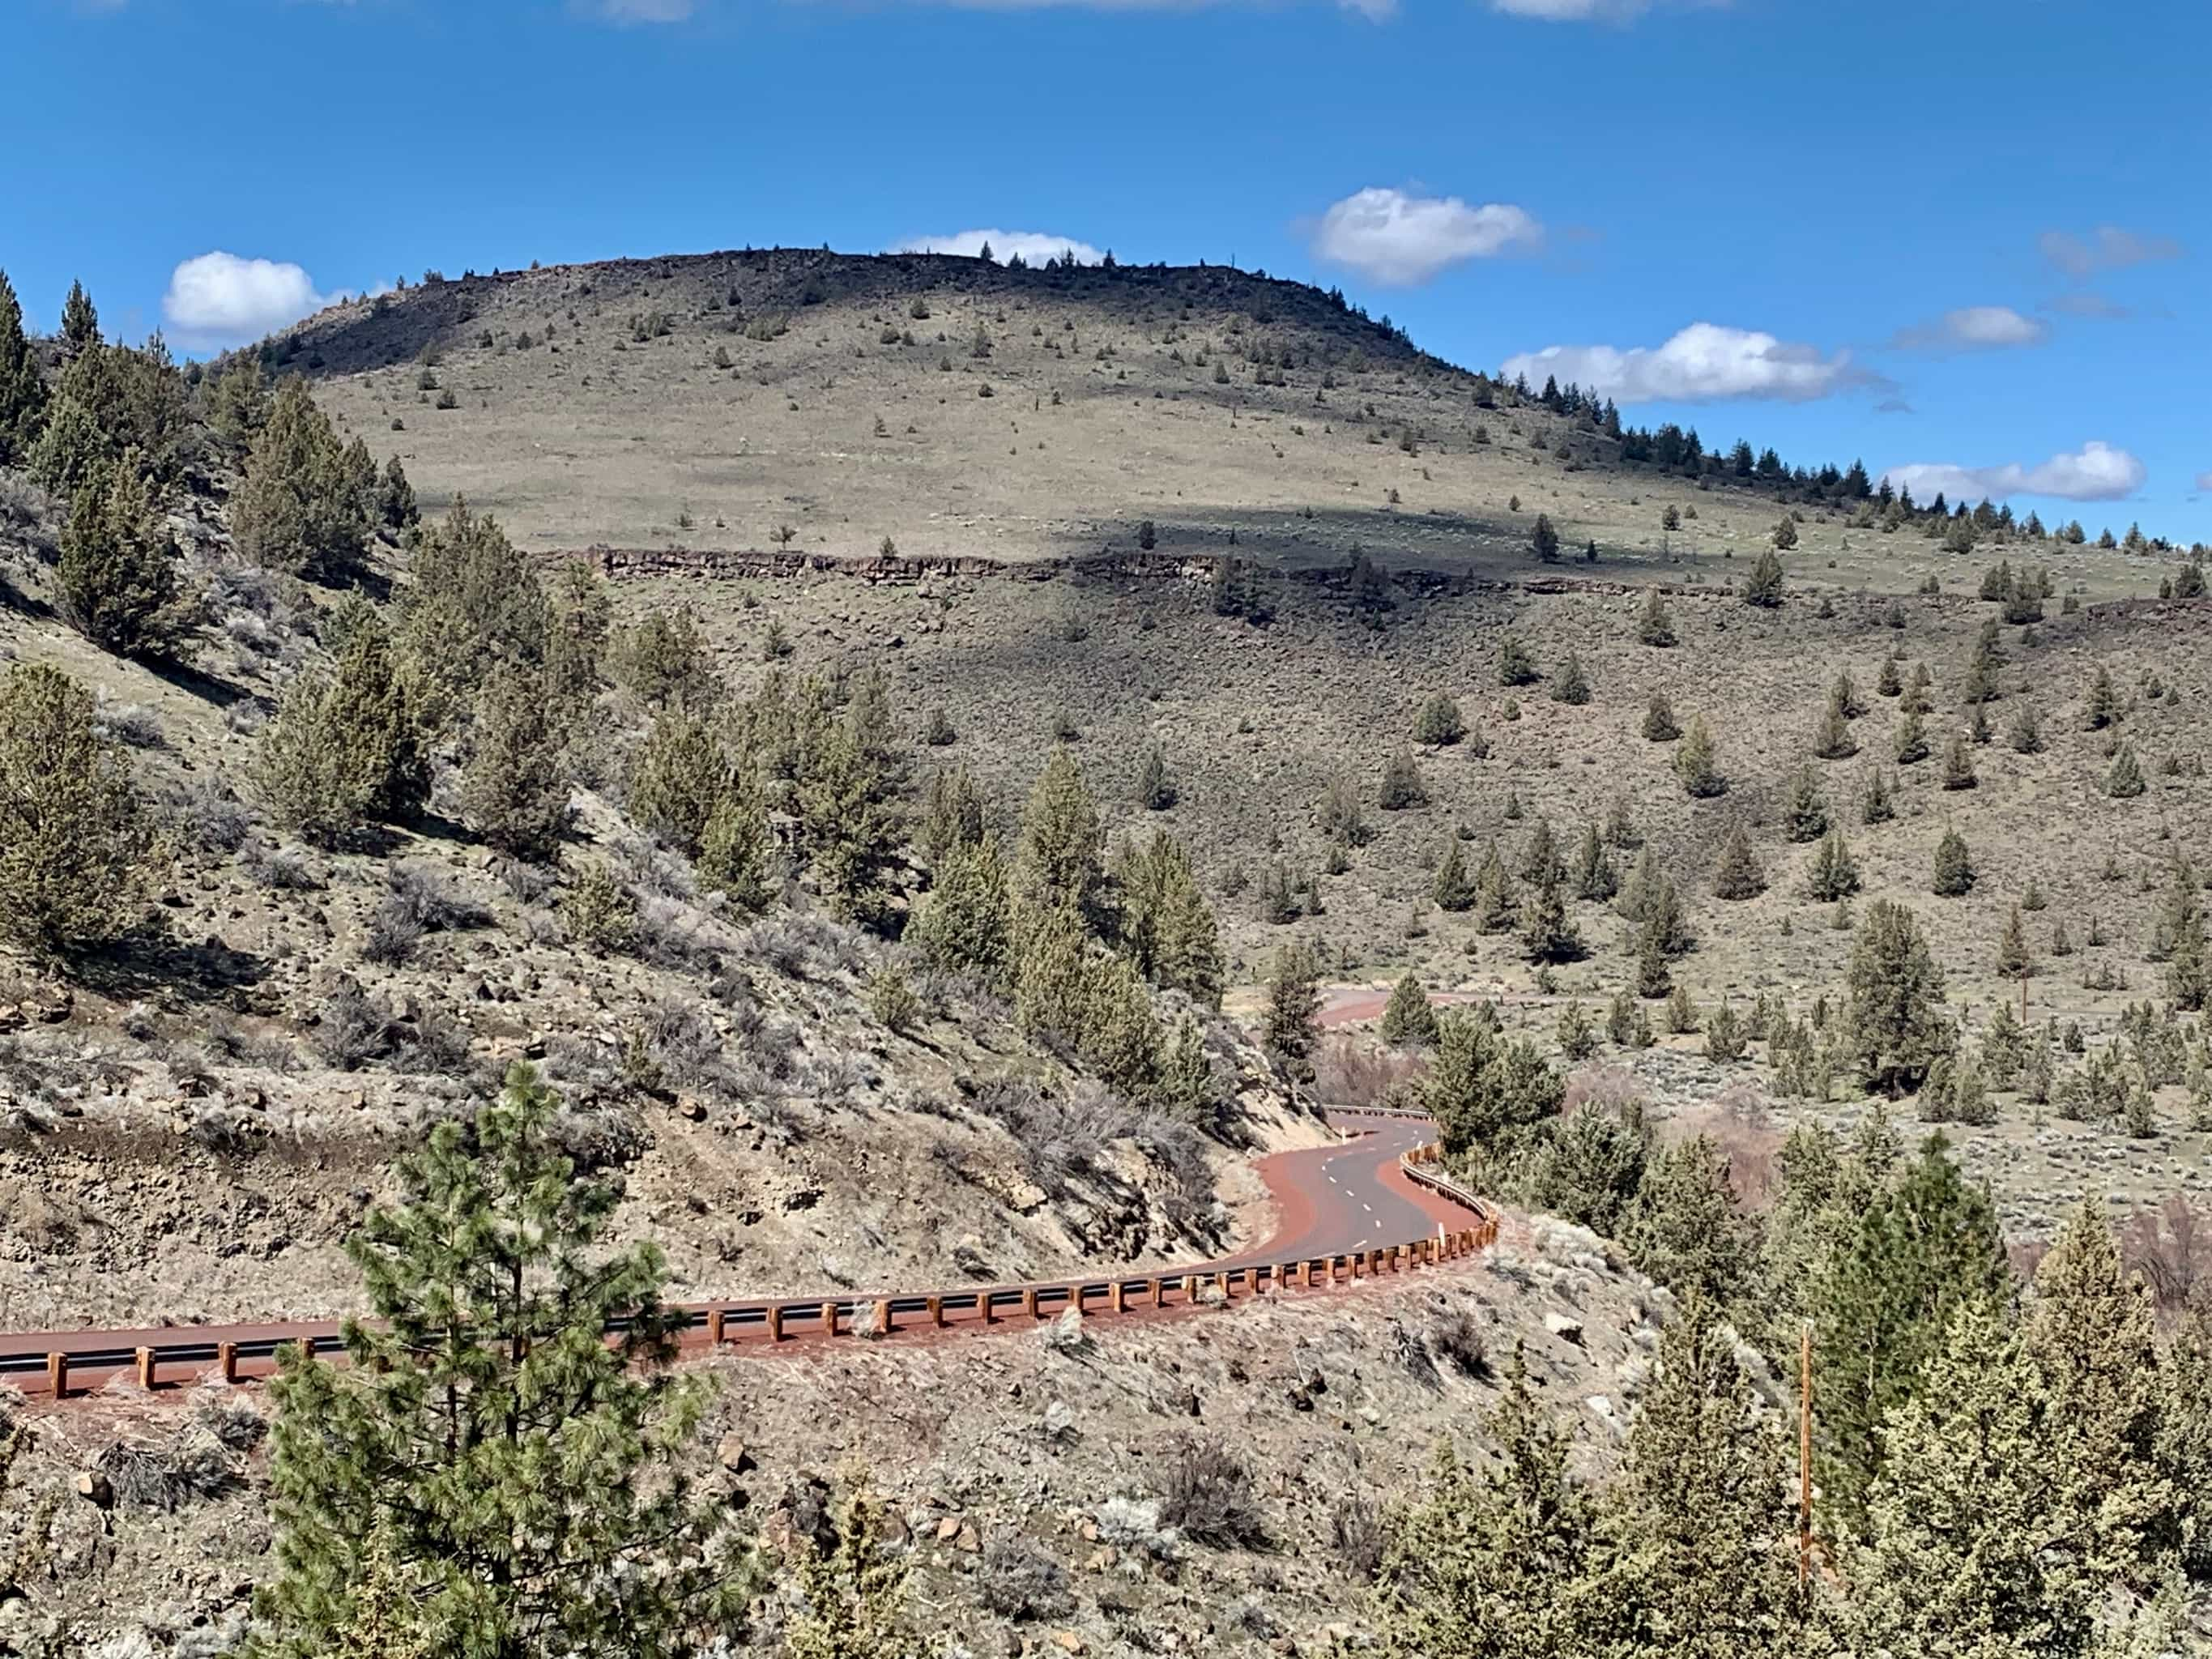 Winding road up hill on Warm Springs Indian reservation.